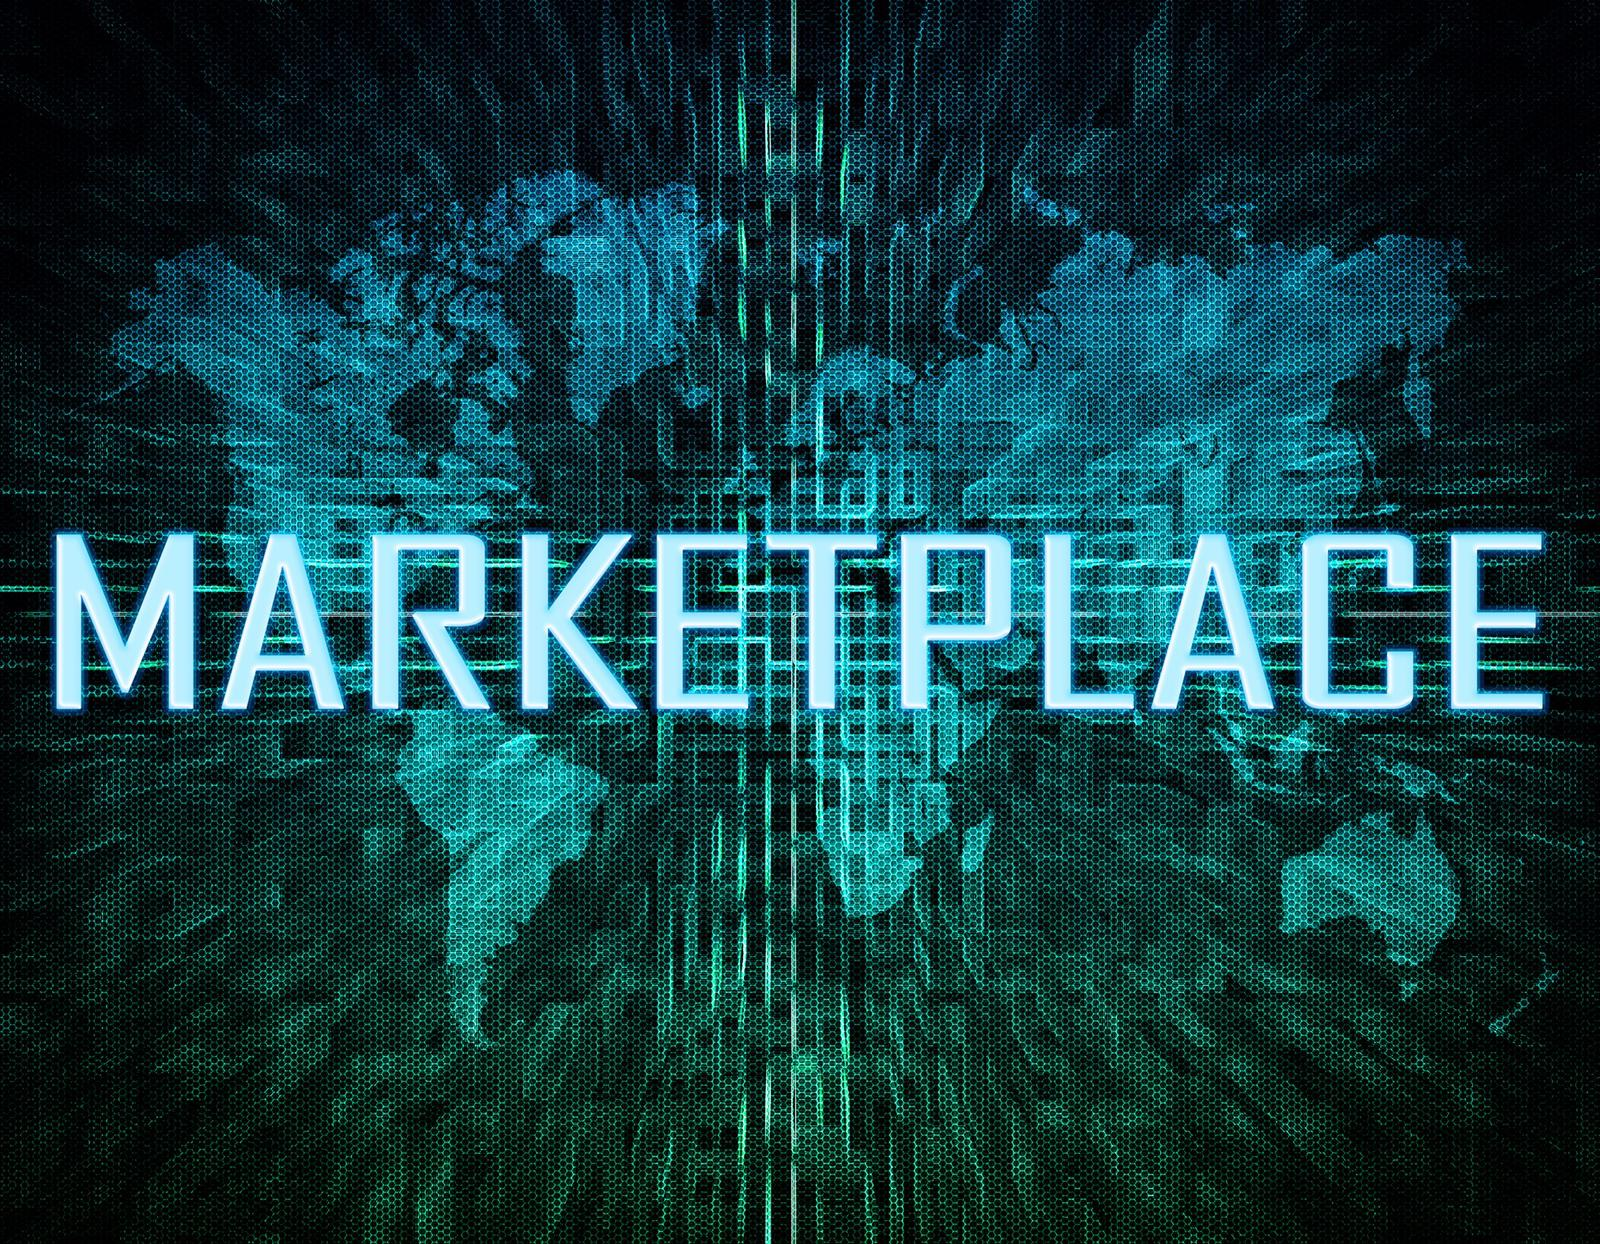 Introduction to popular marketplaces